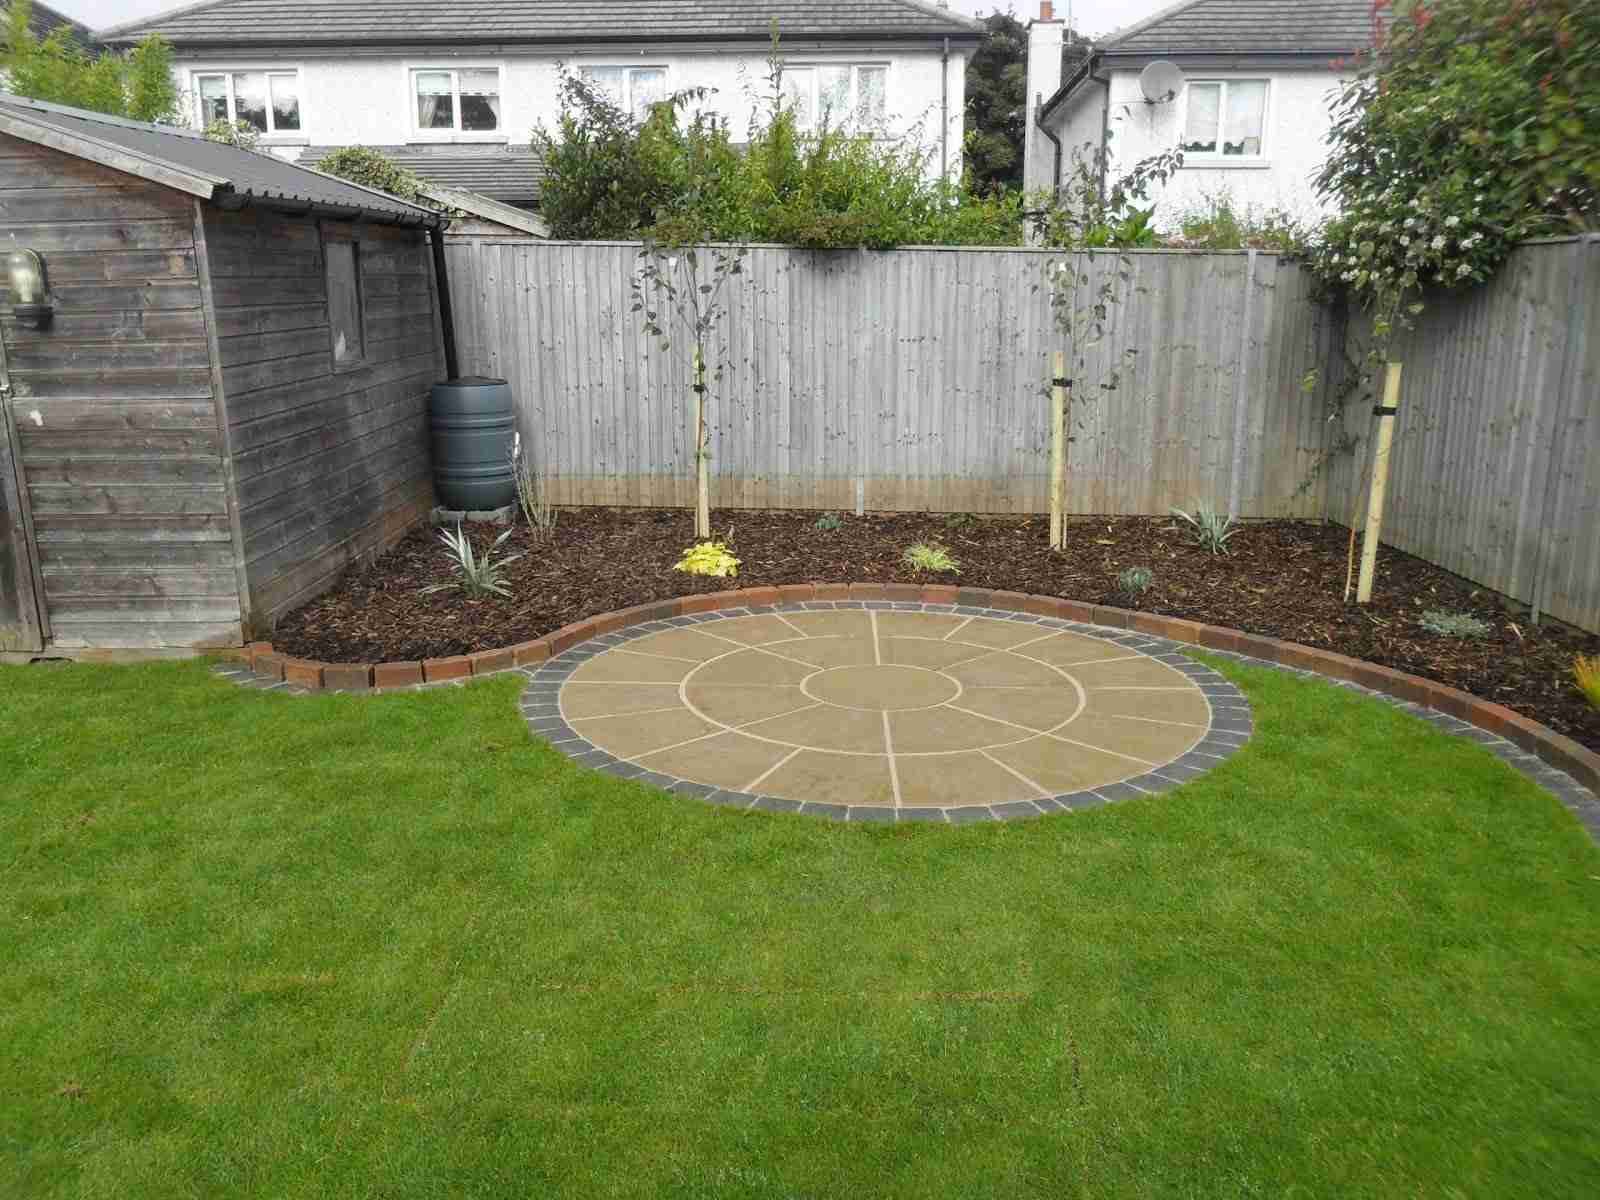 Patio Designes Circular Patio Raised Patio Garden Design Roschoill